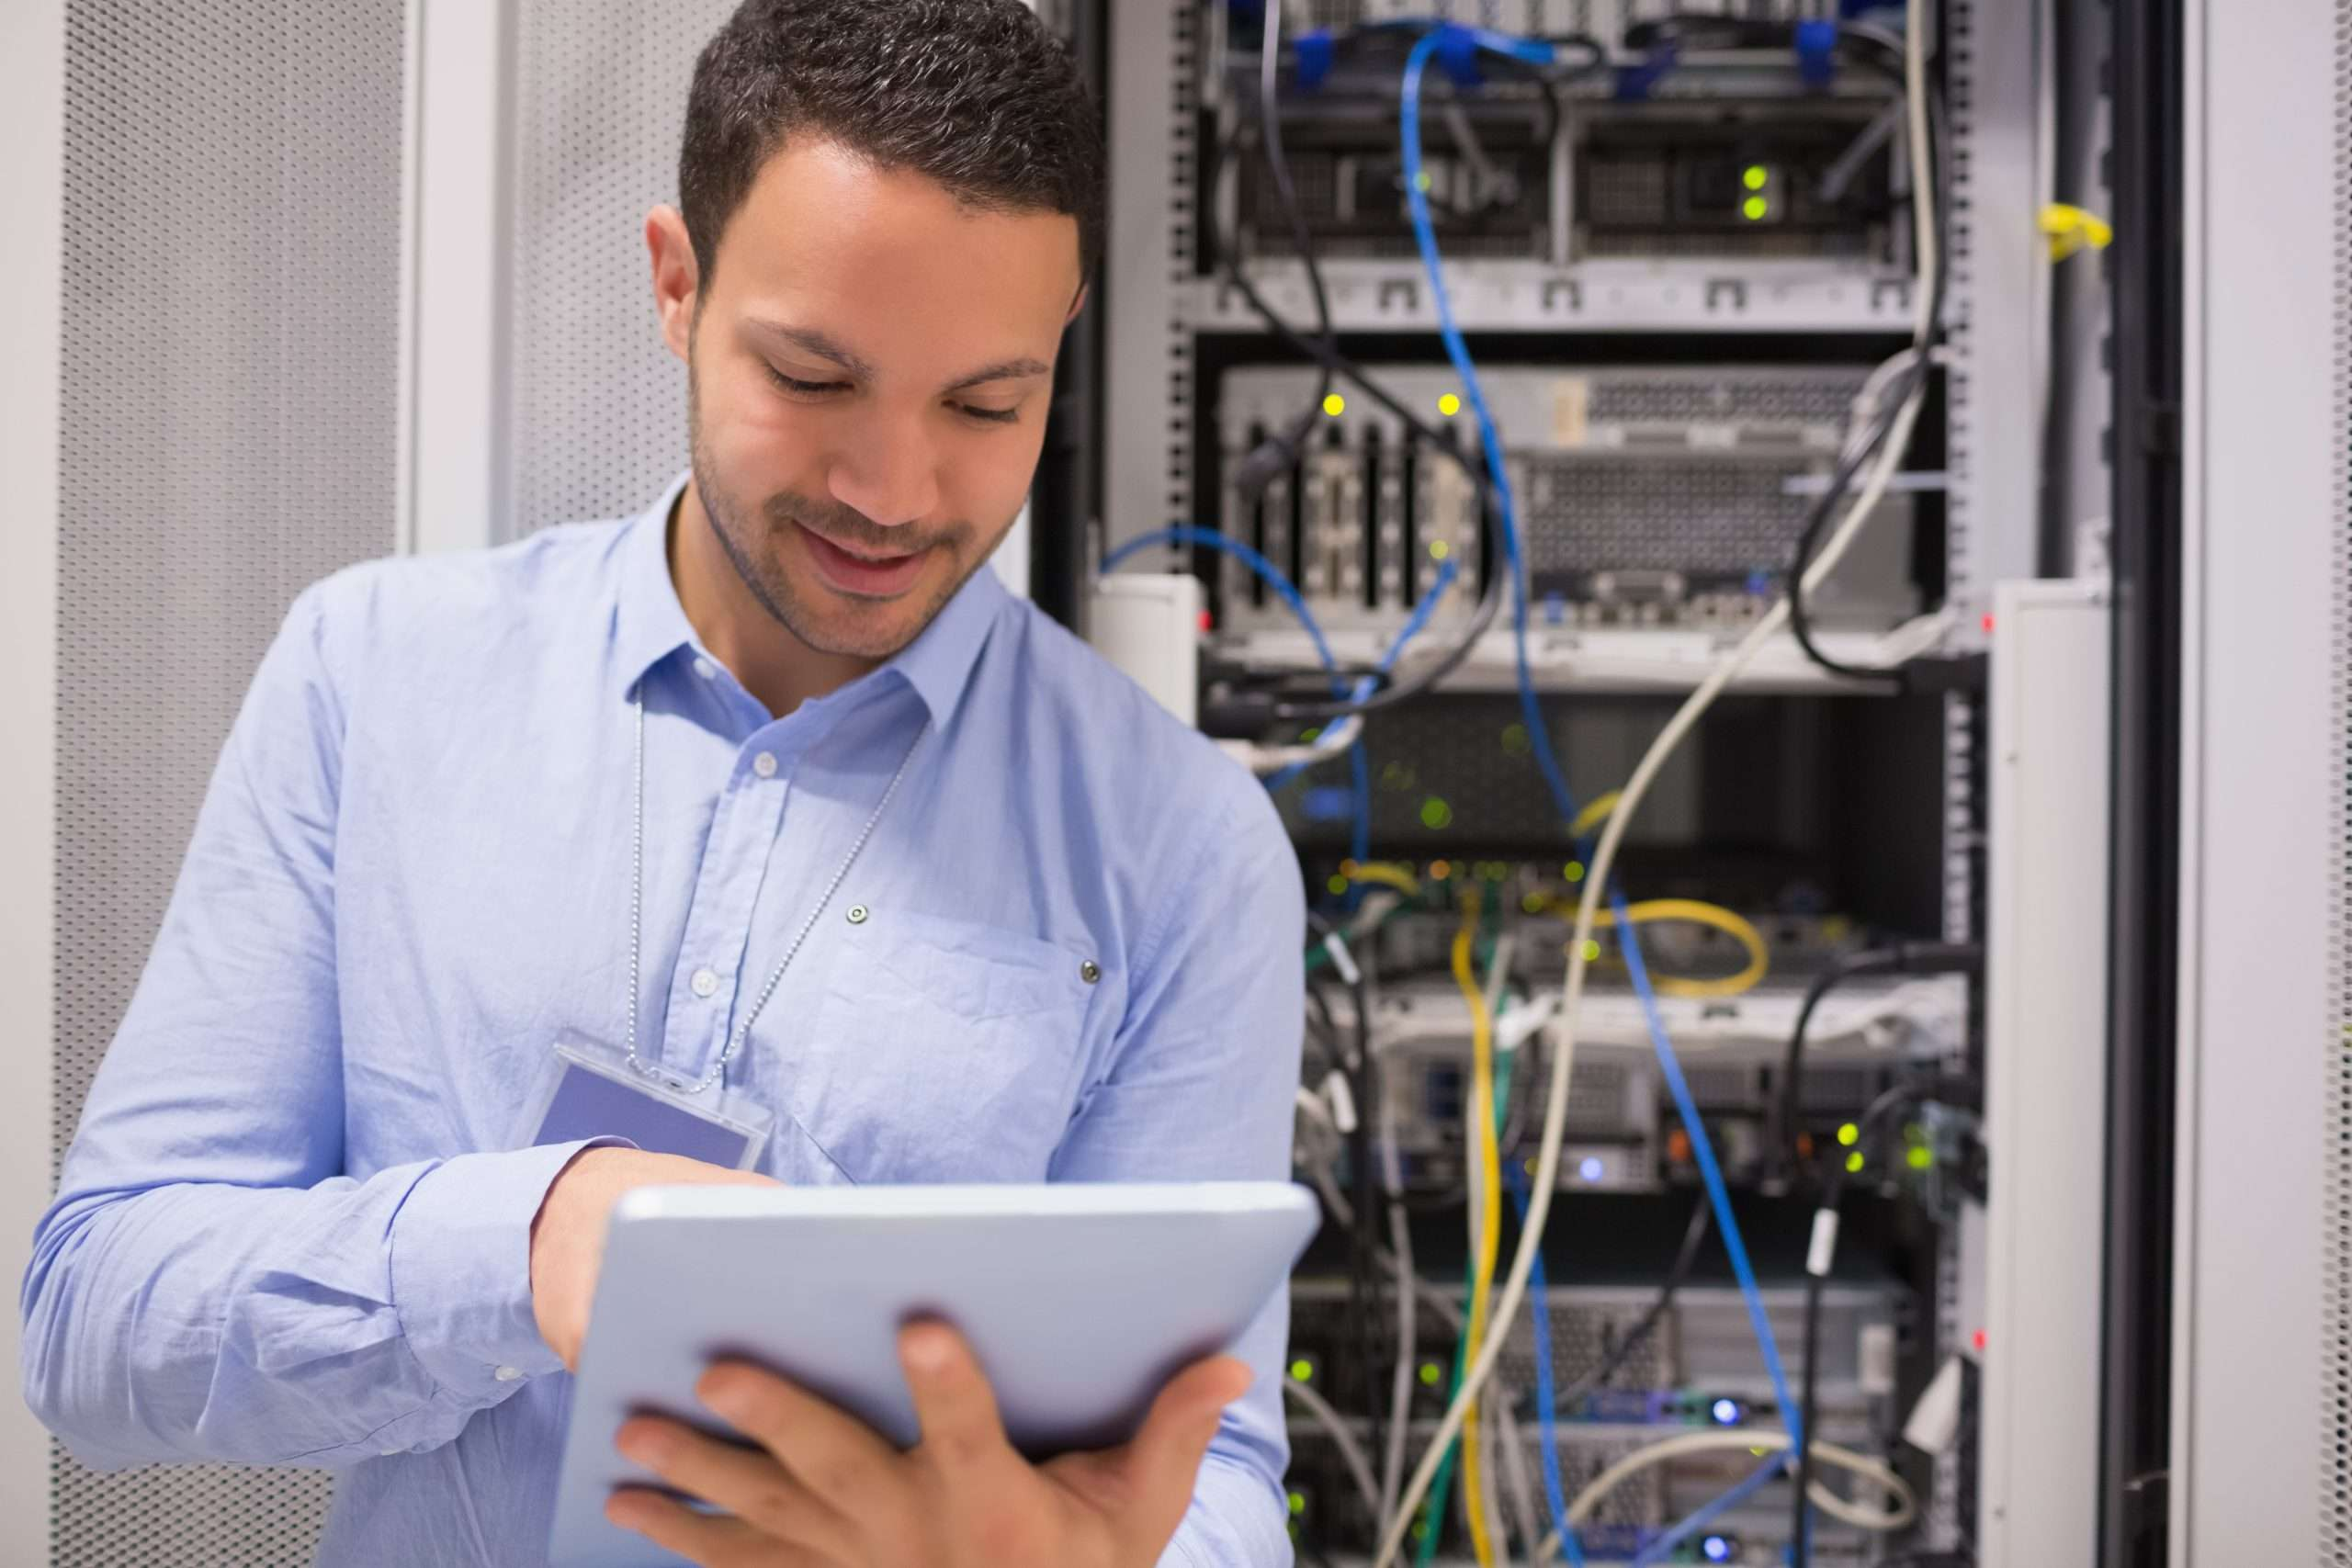 A person holding a tablet stands by a stack works to reduce technology downtime for a business